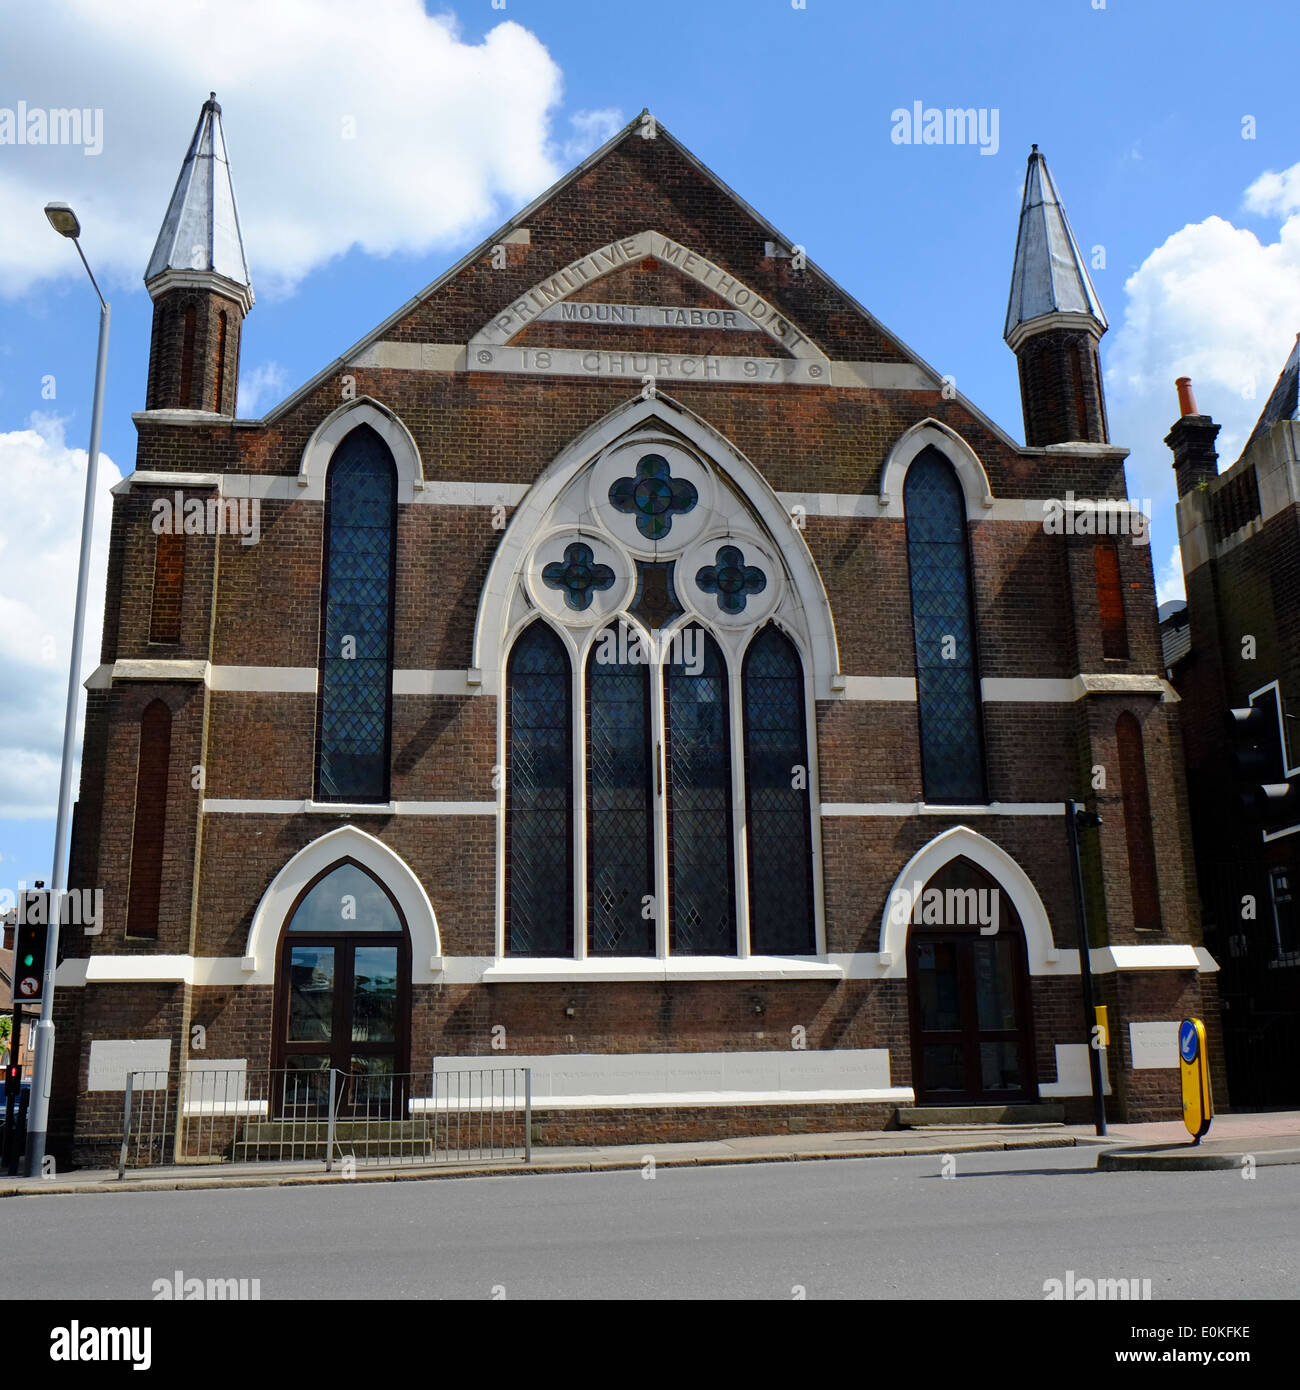 Primitive Methodist Church (Mount Tabor) in Luton - Stock Image